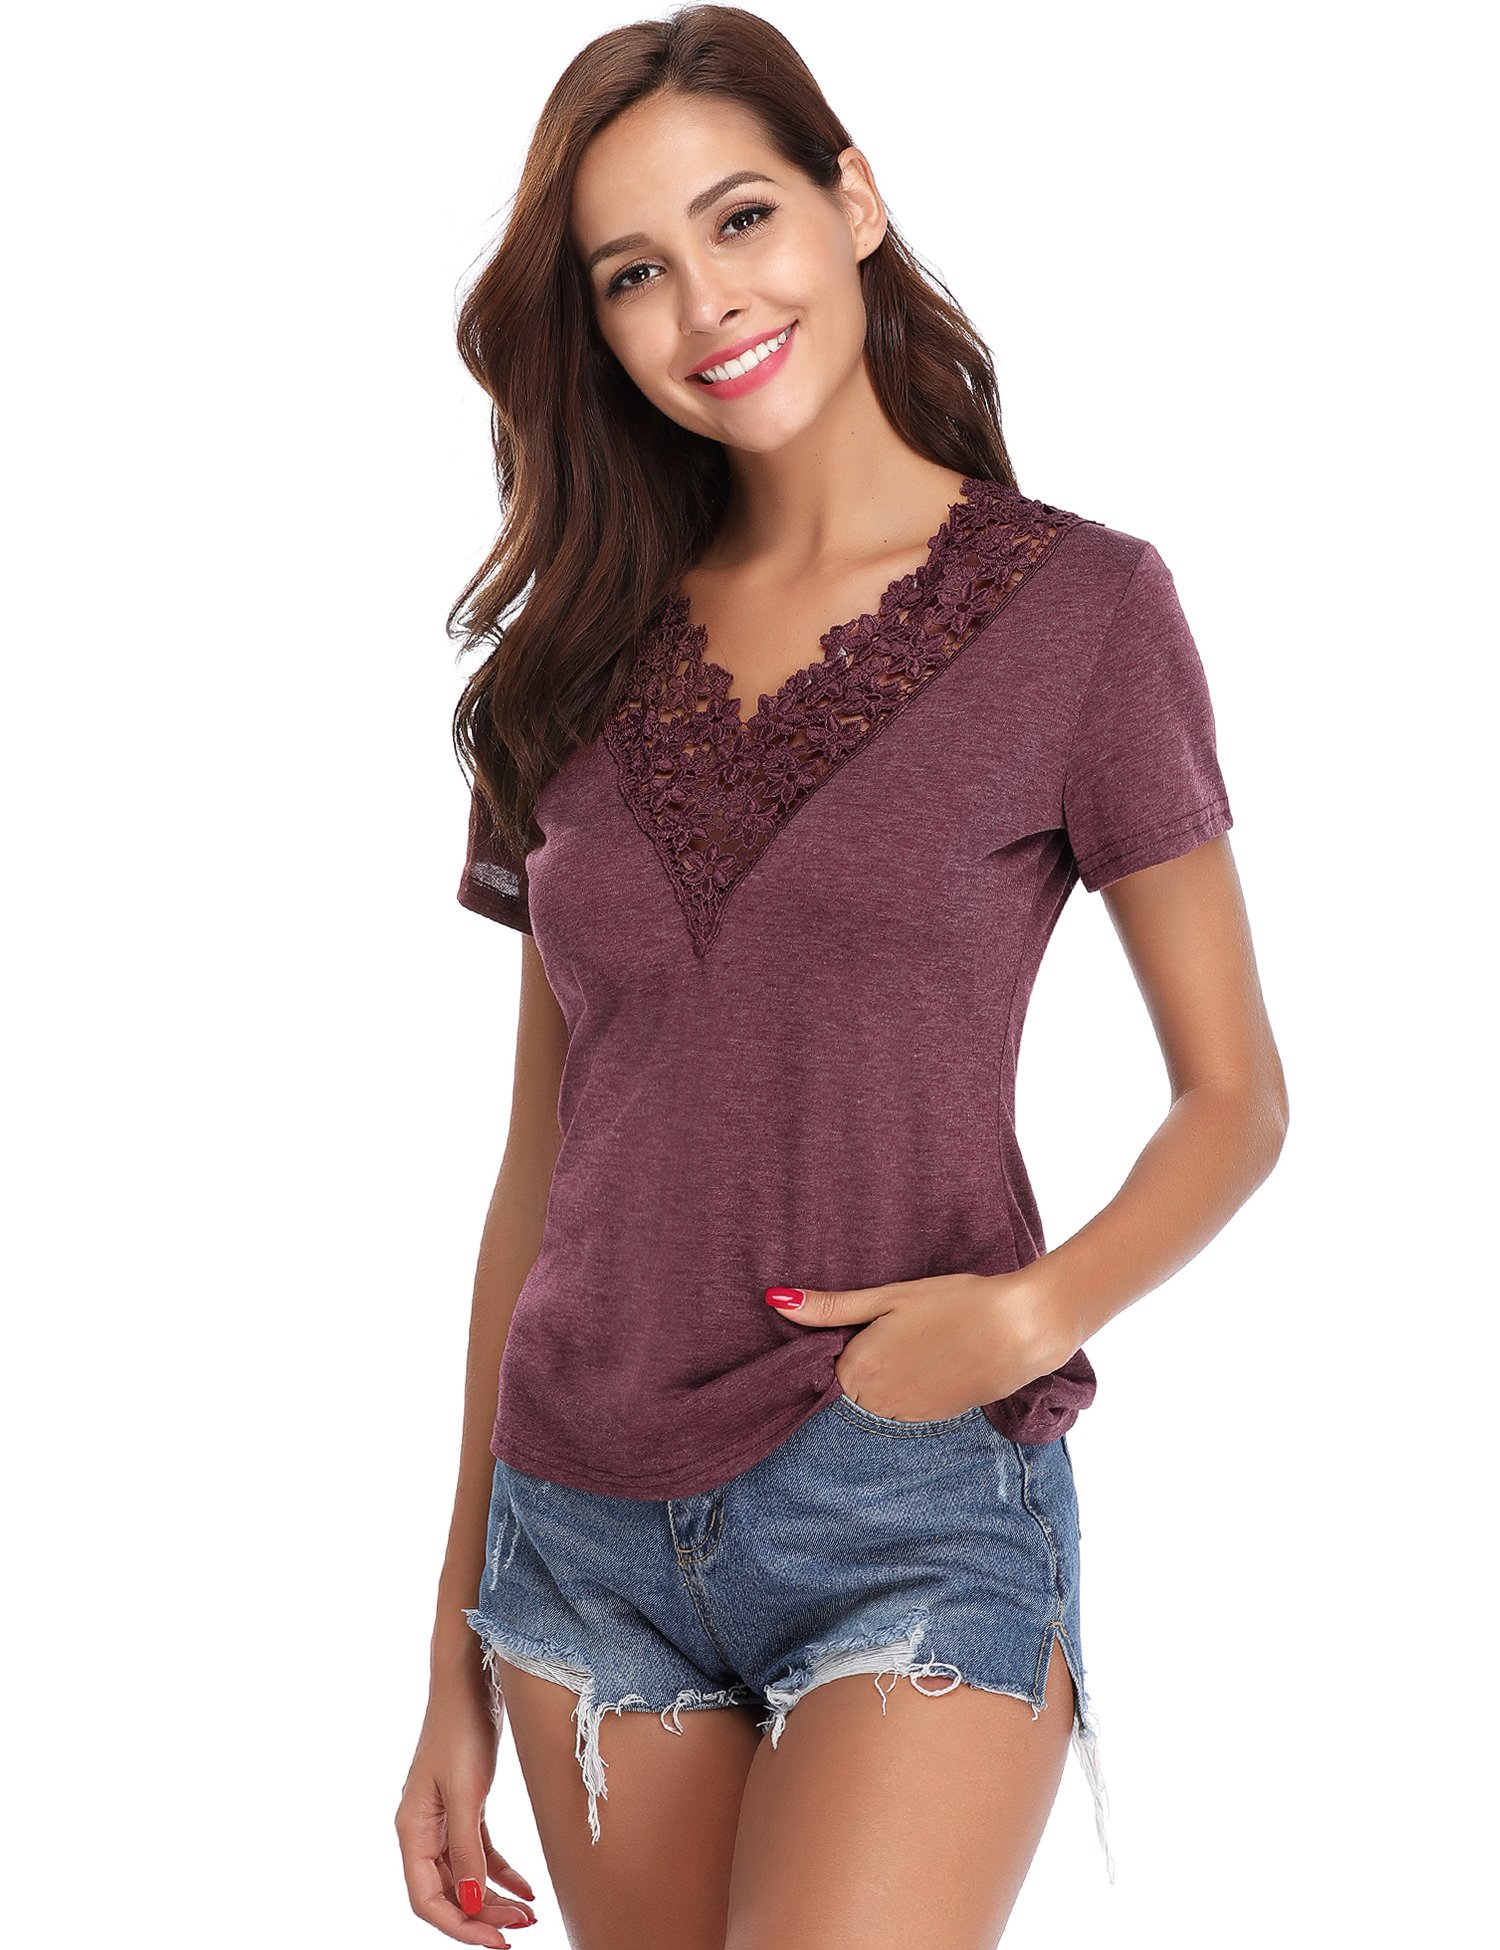 Abollria Women's Lace Short Sleeve T-Shirt Tee V Neck Blouse Casual Tops (Red,L)